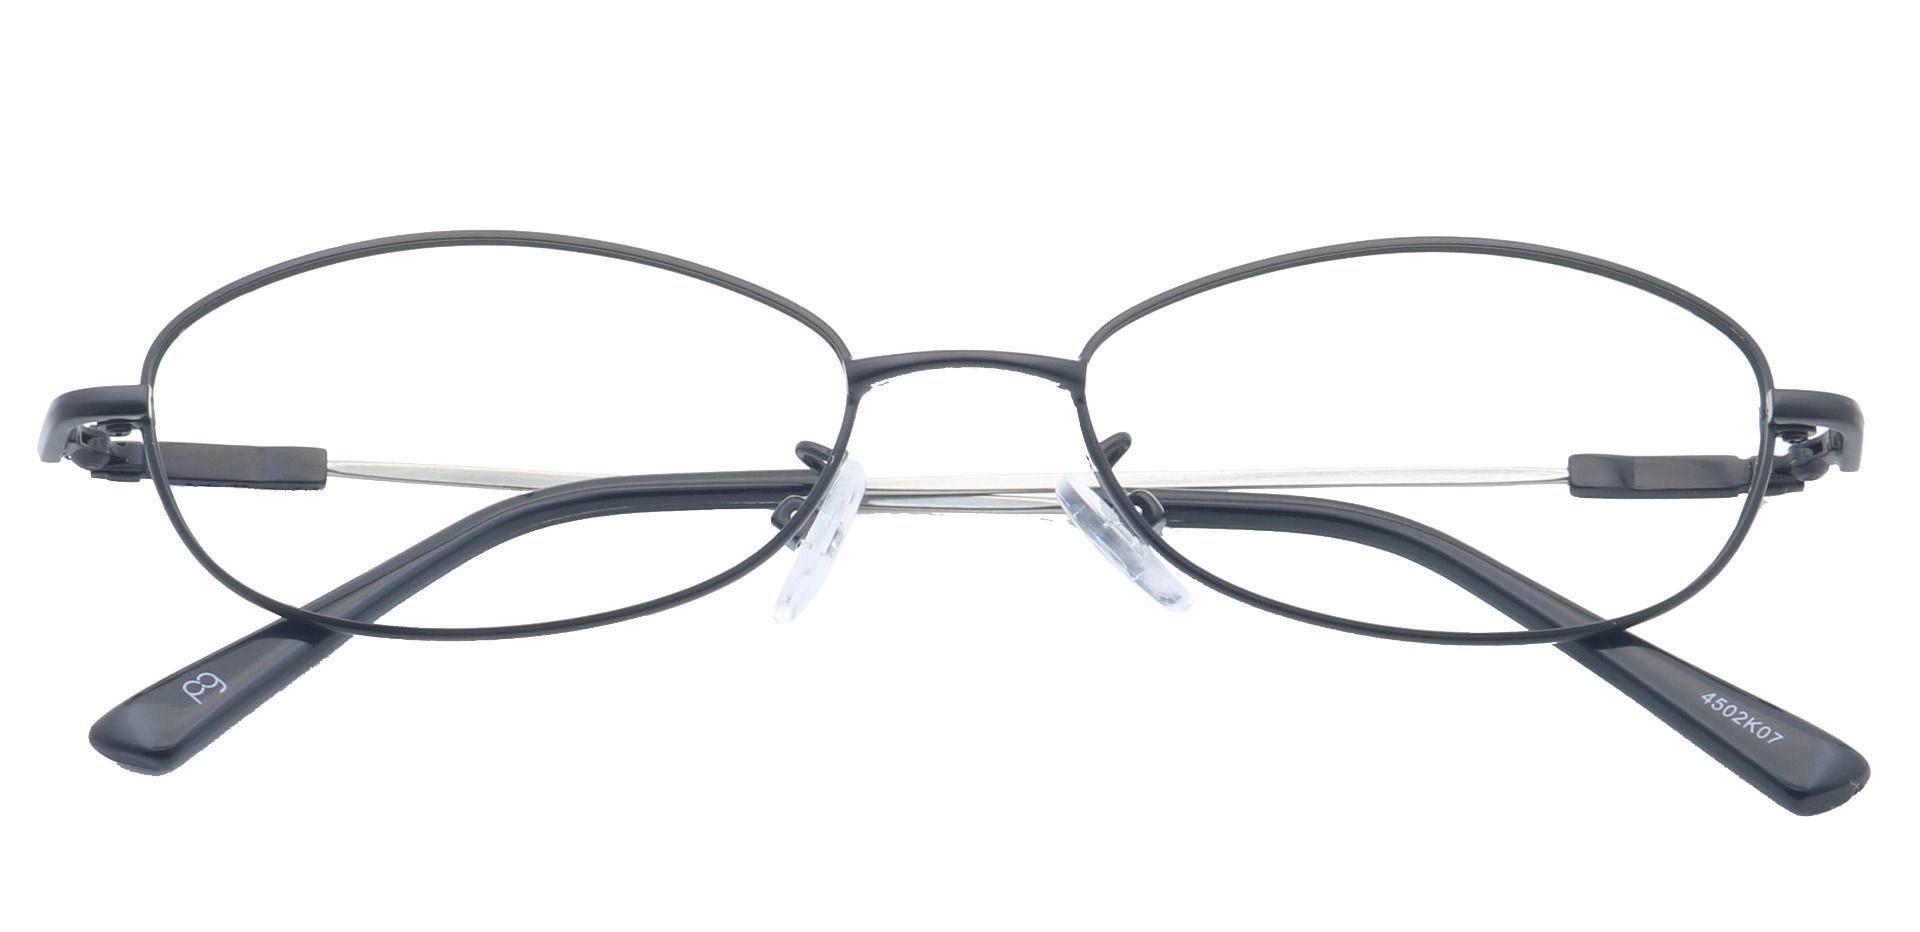 Coronation Oval Single Vision Glasses - Black